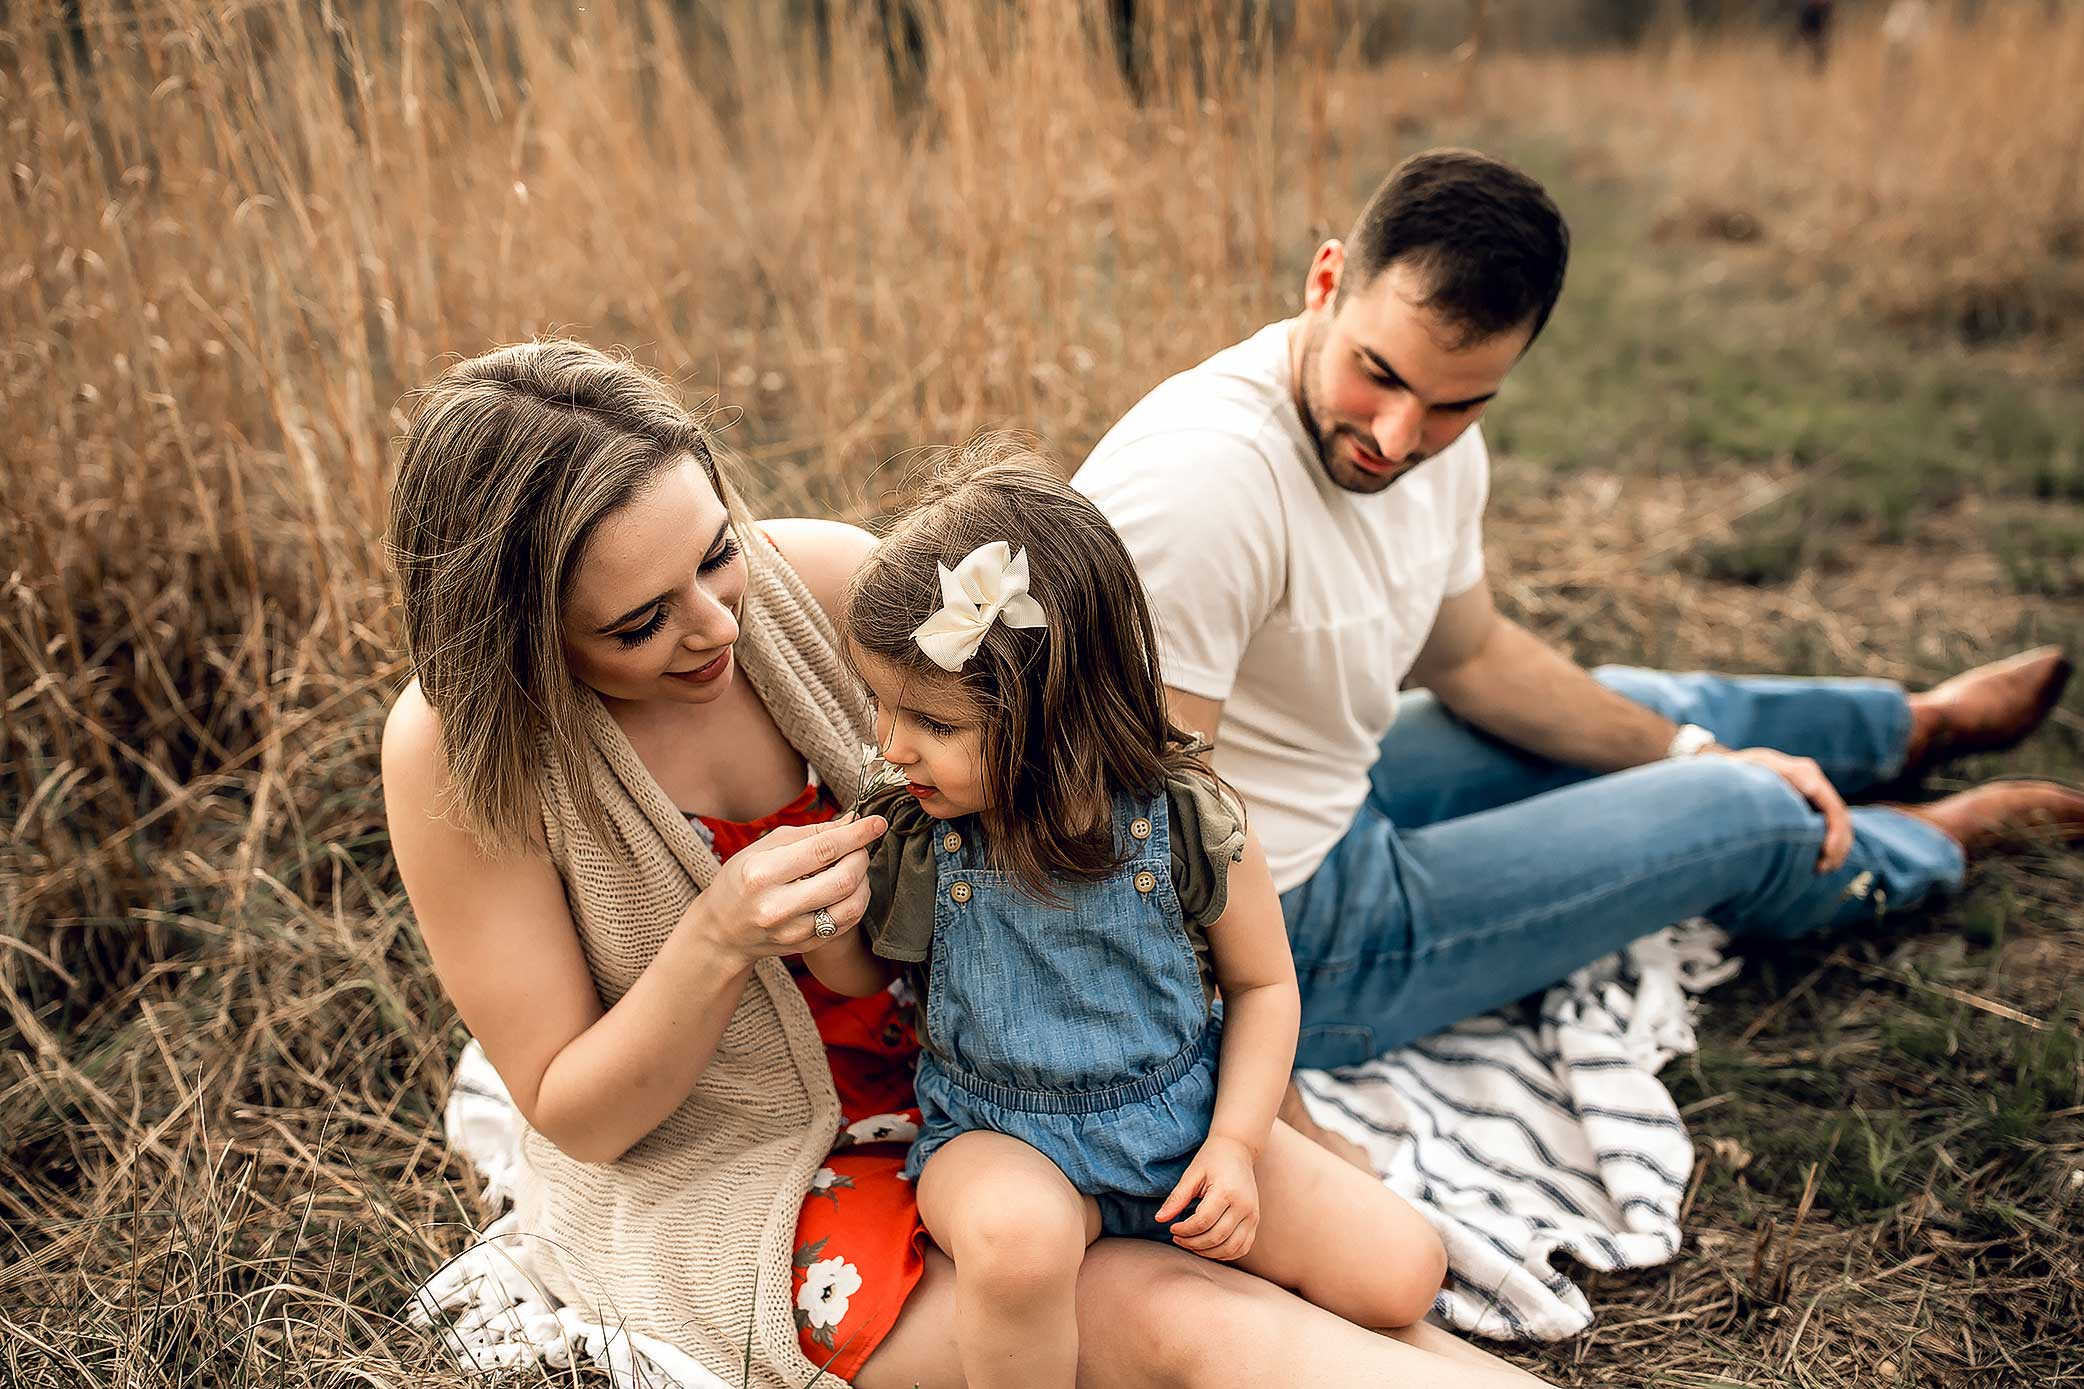 shelby-schiller-photography-family-rust-blue-and-cream-outfits-on-blanket.jpg